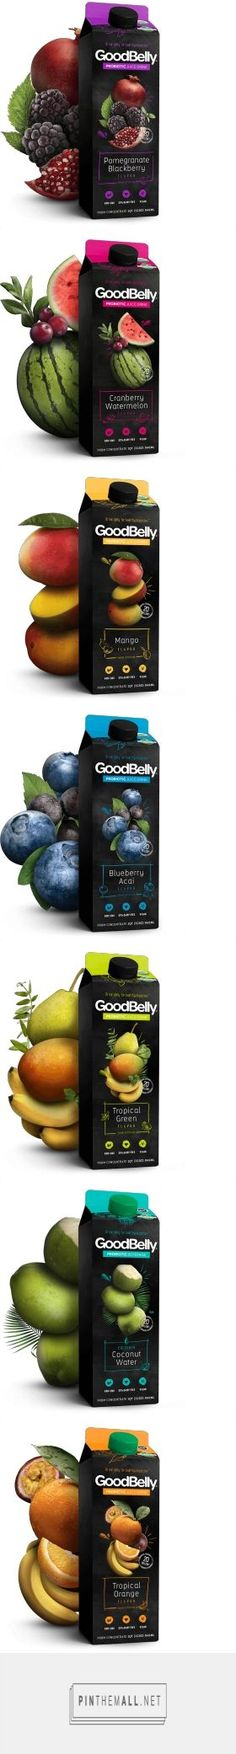 GoodBelly By The Glass probiotic fruit drink designed by LRXD. Pin curated by #SFields99 #packaging #design